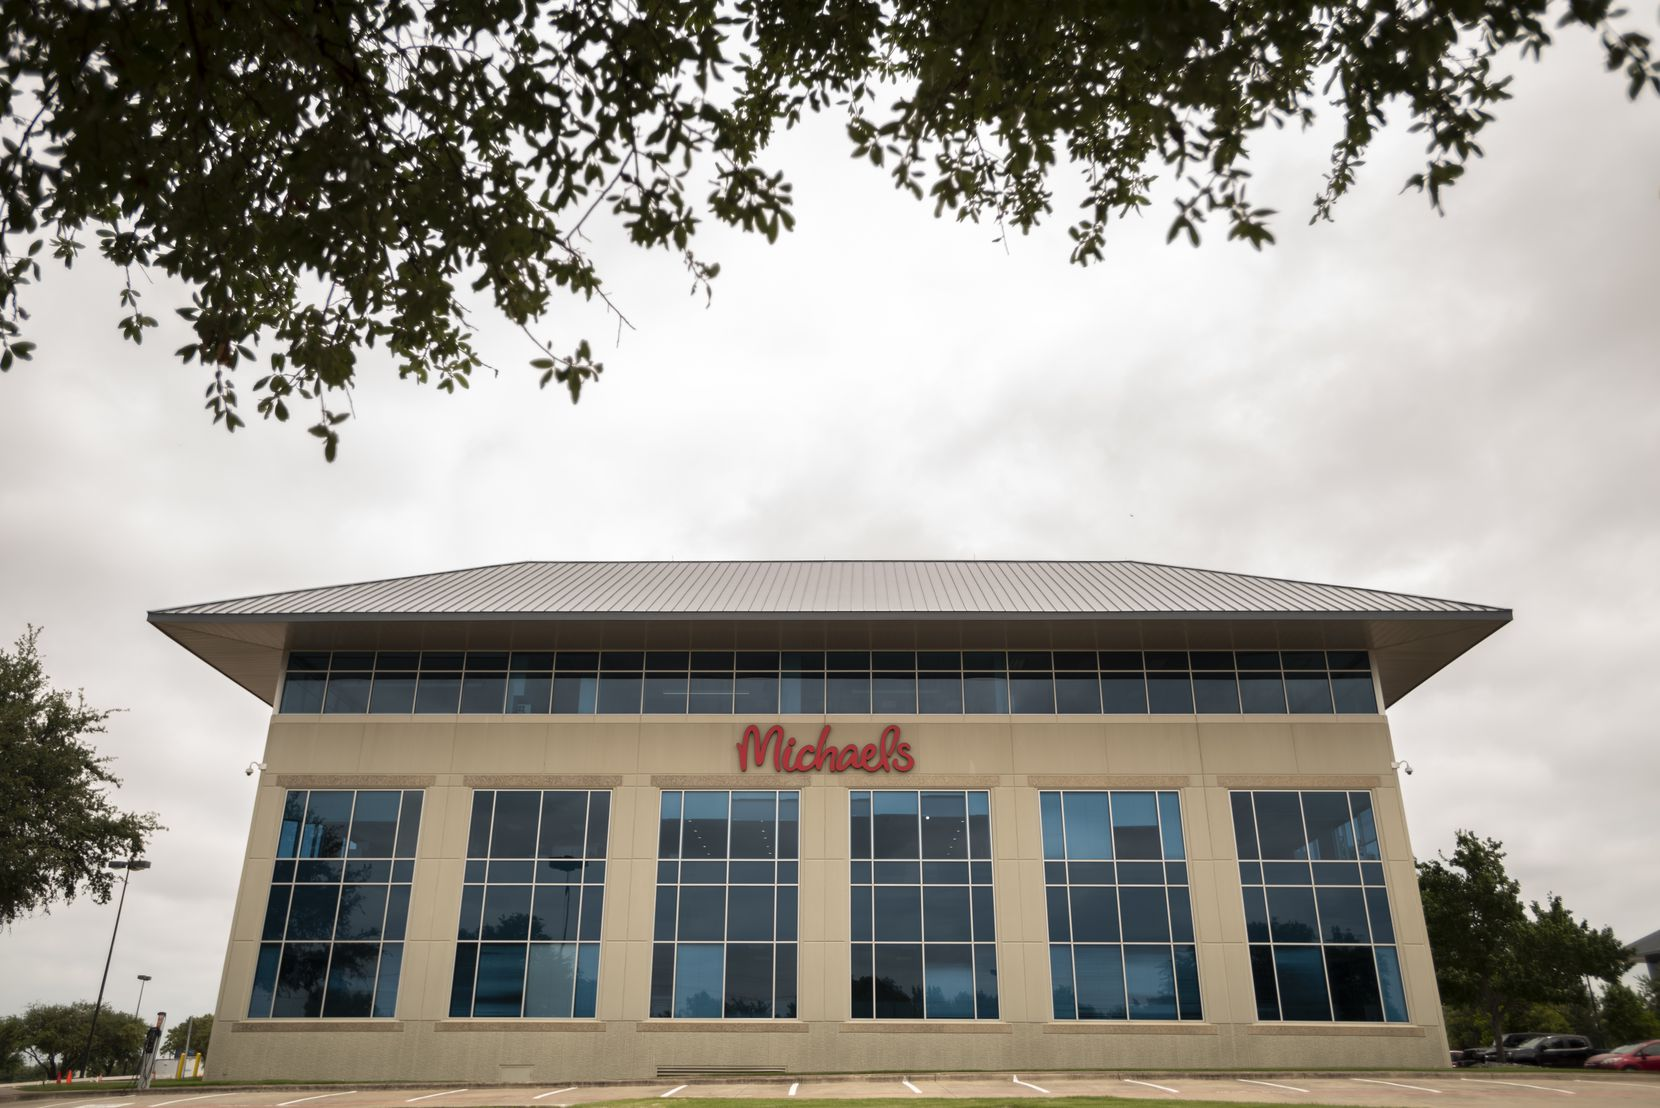 Michaels is moving its headquarters from its longtime Bent Branch Drive location into a 123,740-square-foot, three-story building near DFW International Airport. The Royal Ridge III building on Carpenter Freeway is near Esters Boulevard.